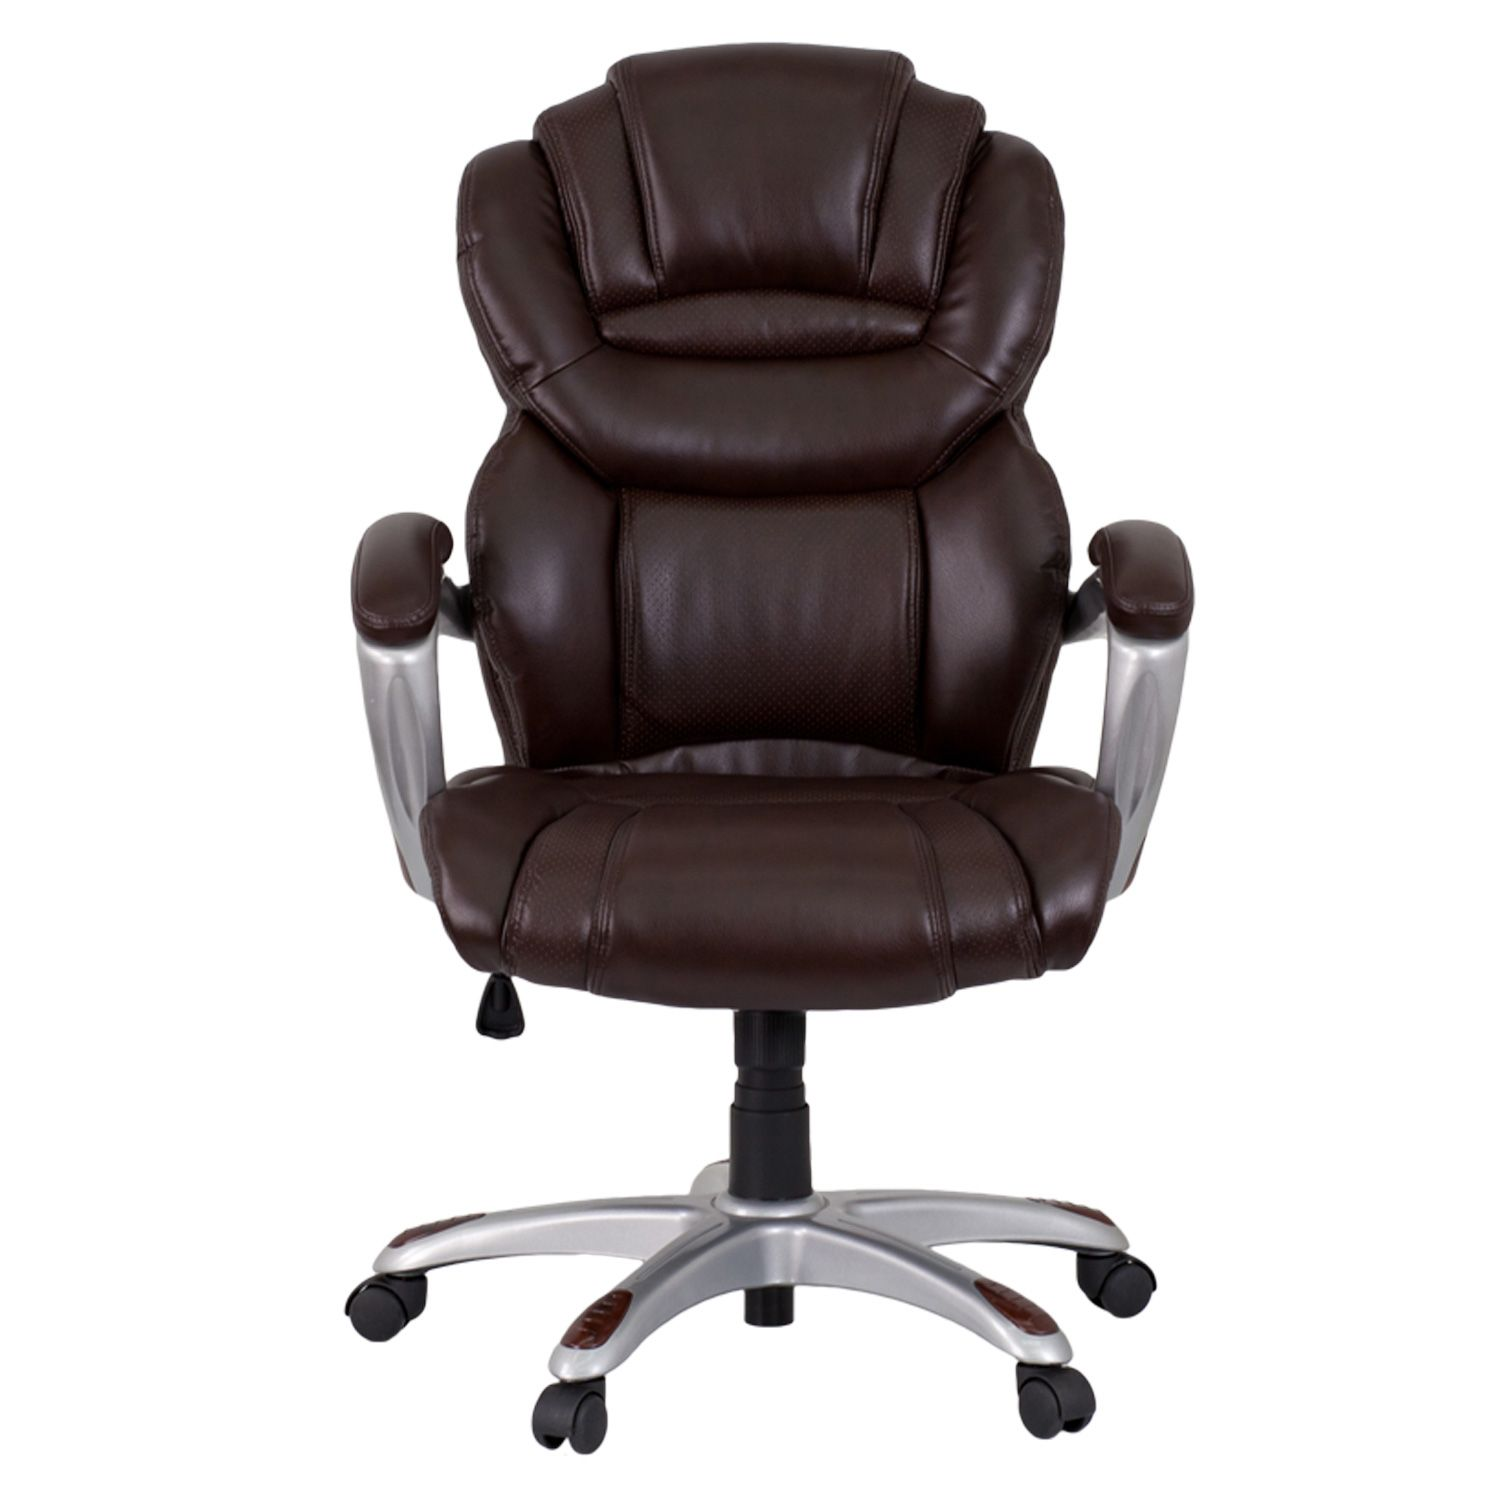 Tan leather office chair - Your Online Account Has Been Created